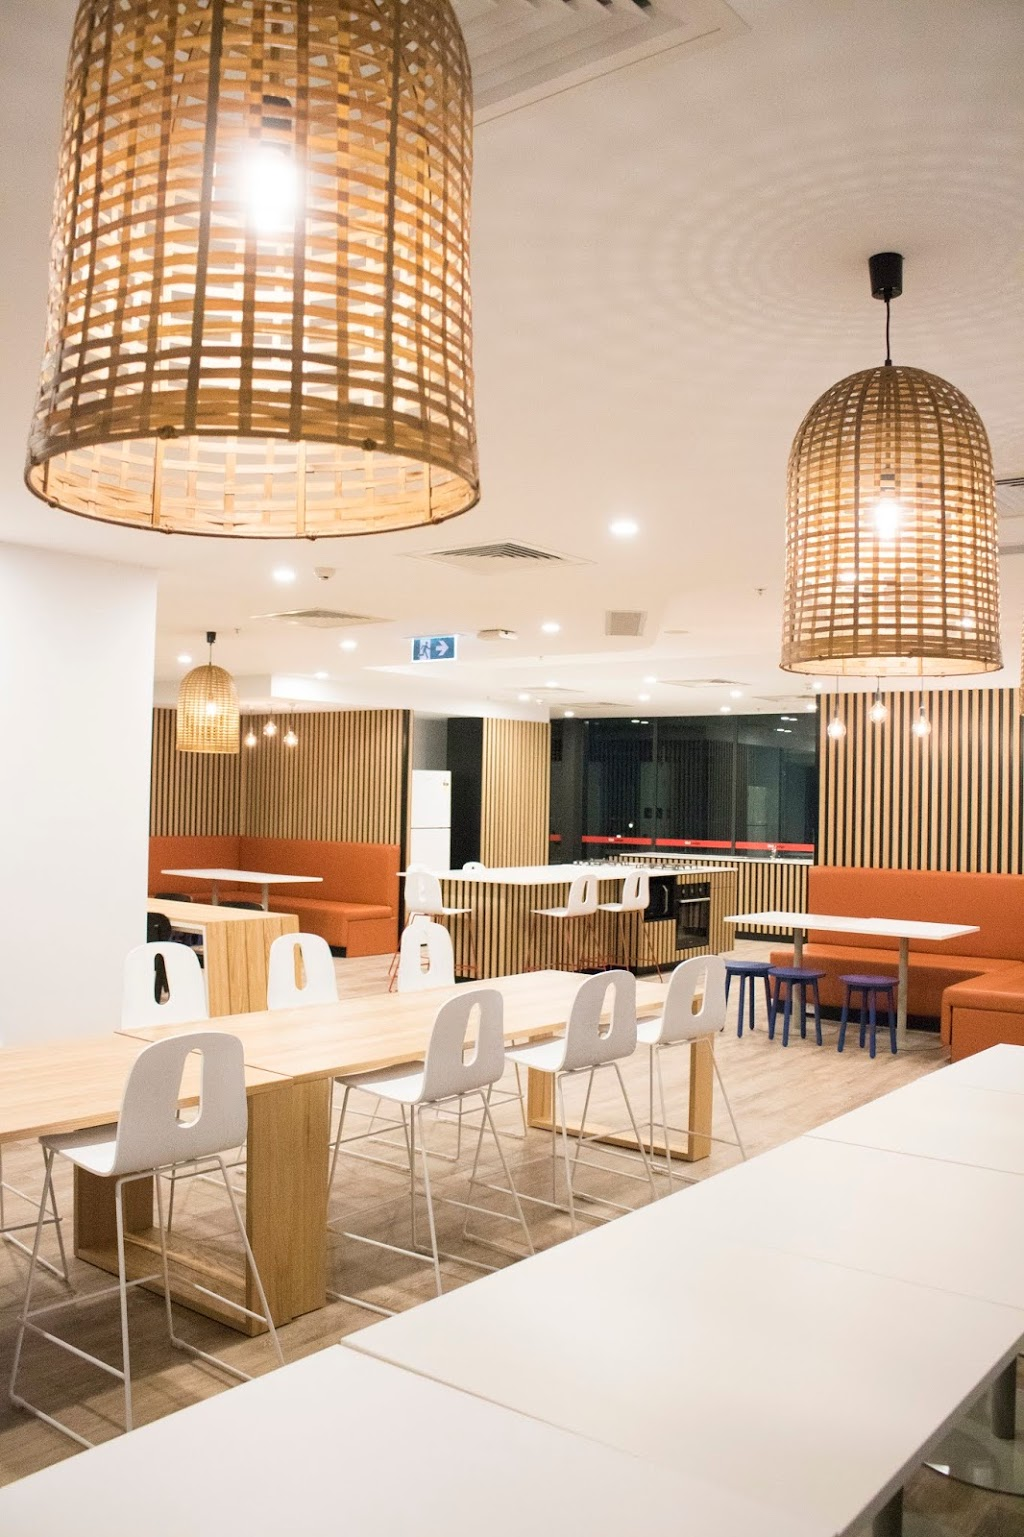 UniLodge Park Central | lodging | 8 Gillingham St, Woolloongabba QLD 4102, Australia | 0735569500 OR +61 7 3556 9500